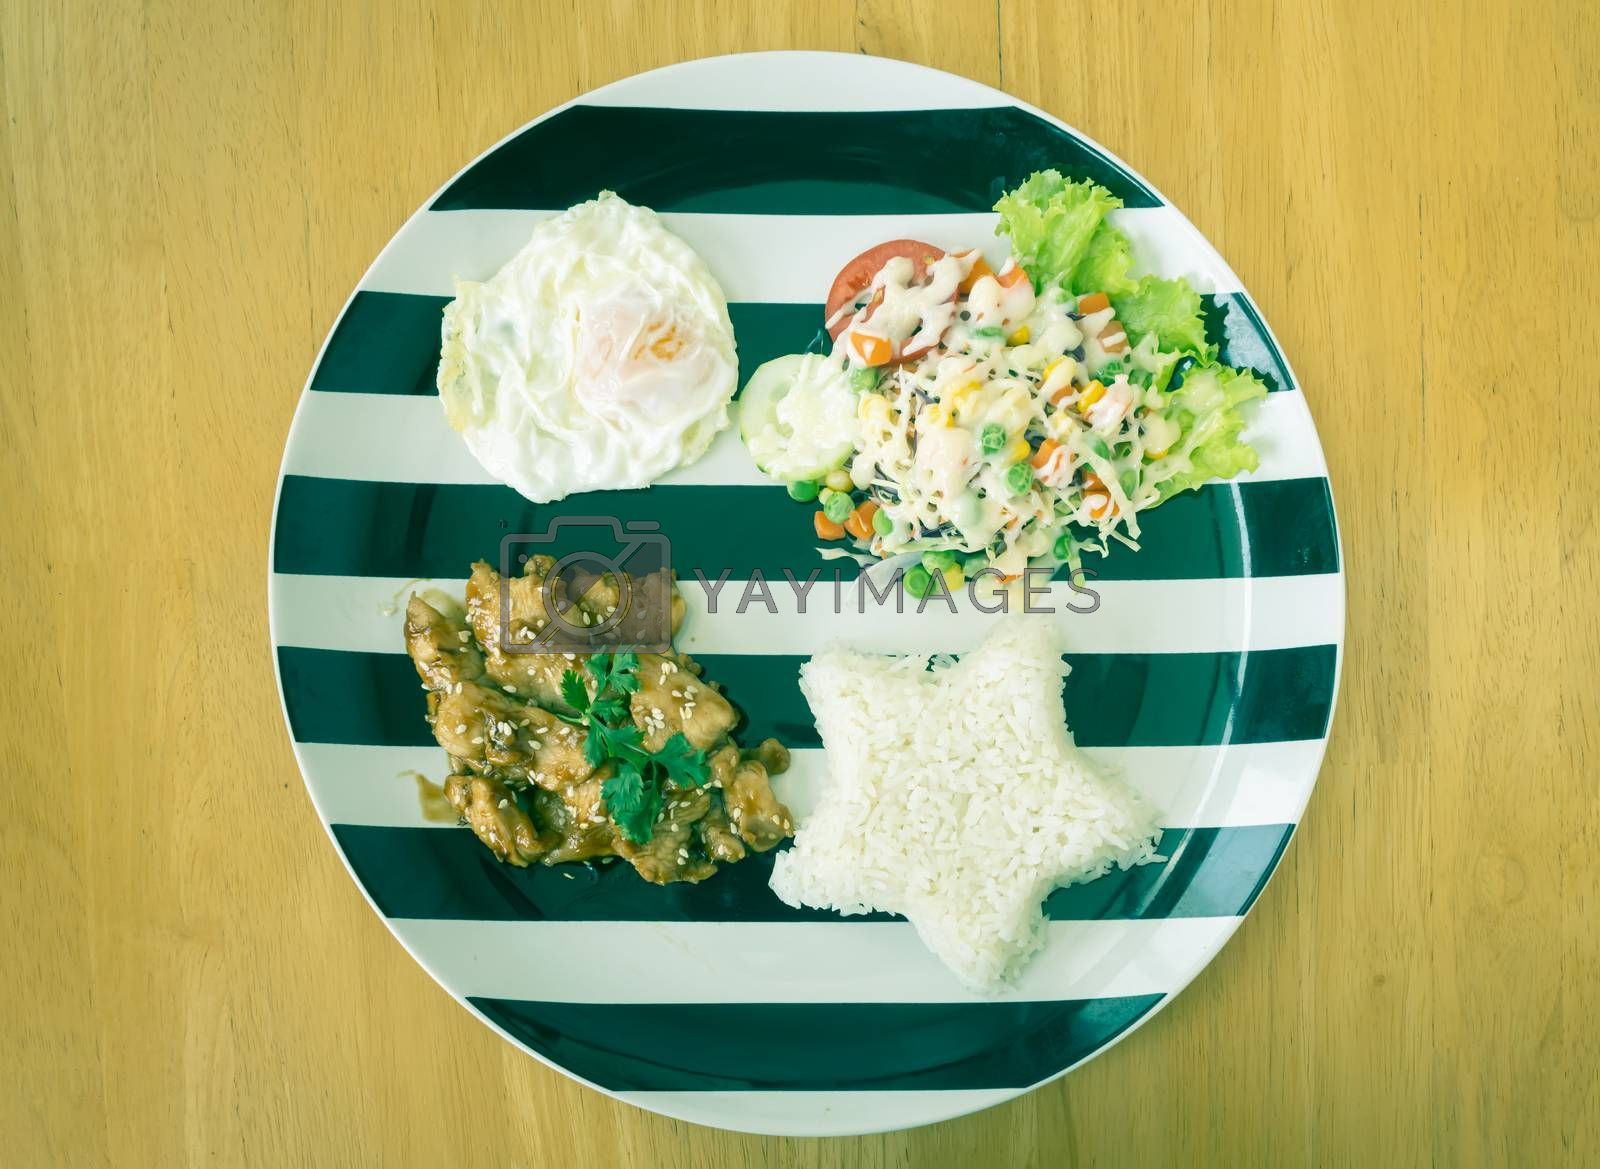 Fried Chicken with Garlic and Pepper and Fried Egg and Vegan Salad and Rice in Dish on Wood Table with Natural Light on Flatlay View in Vintage Tone